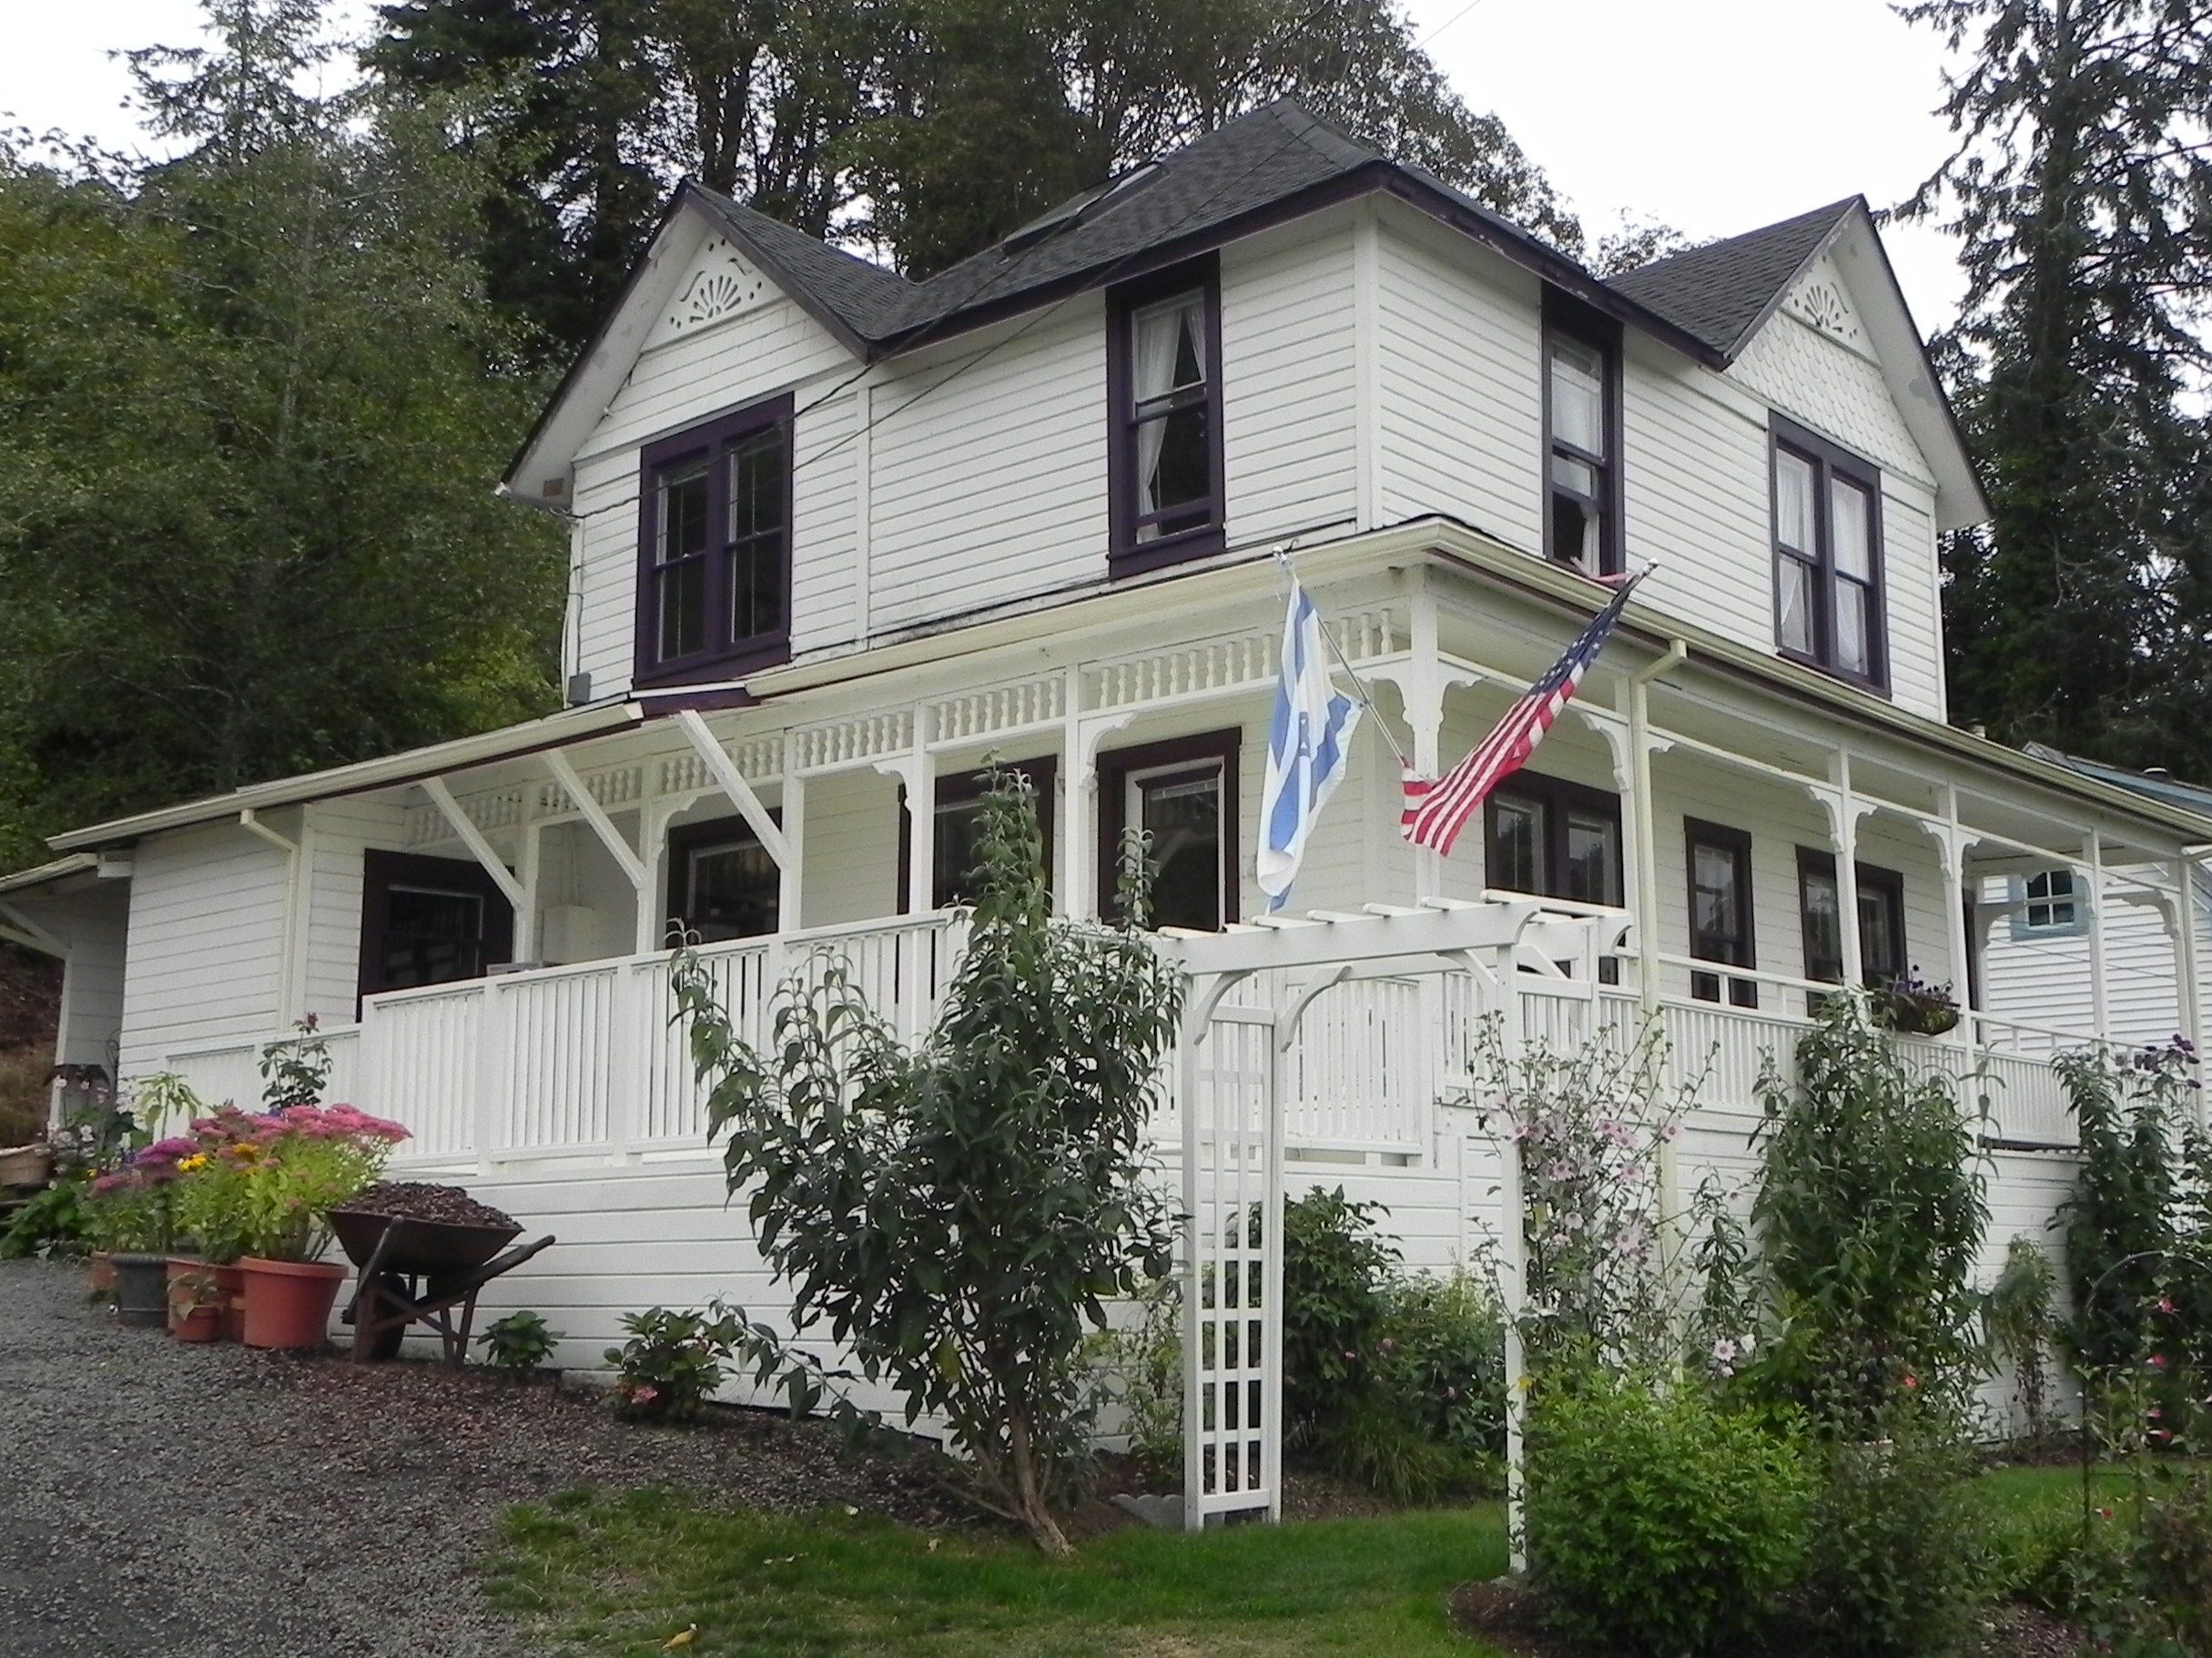 Goonies house in astoria oregon my oregon pinterest for Building a home in oregon